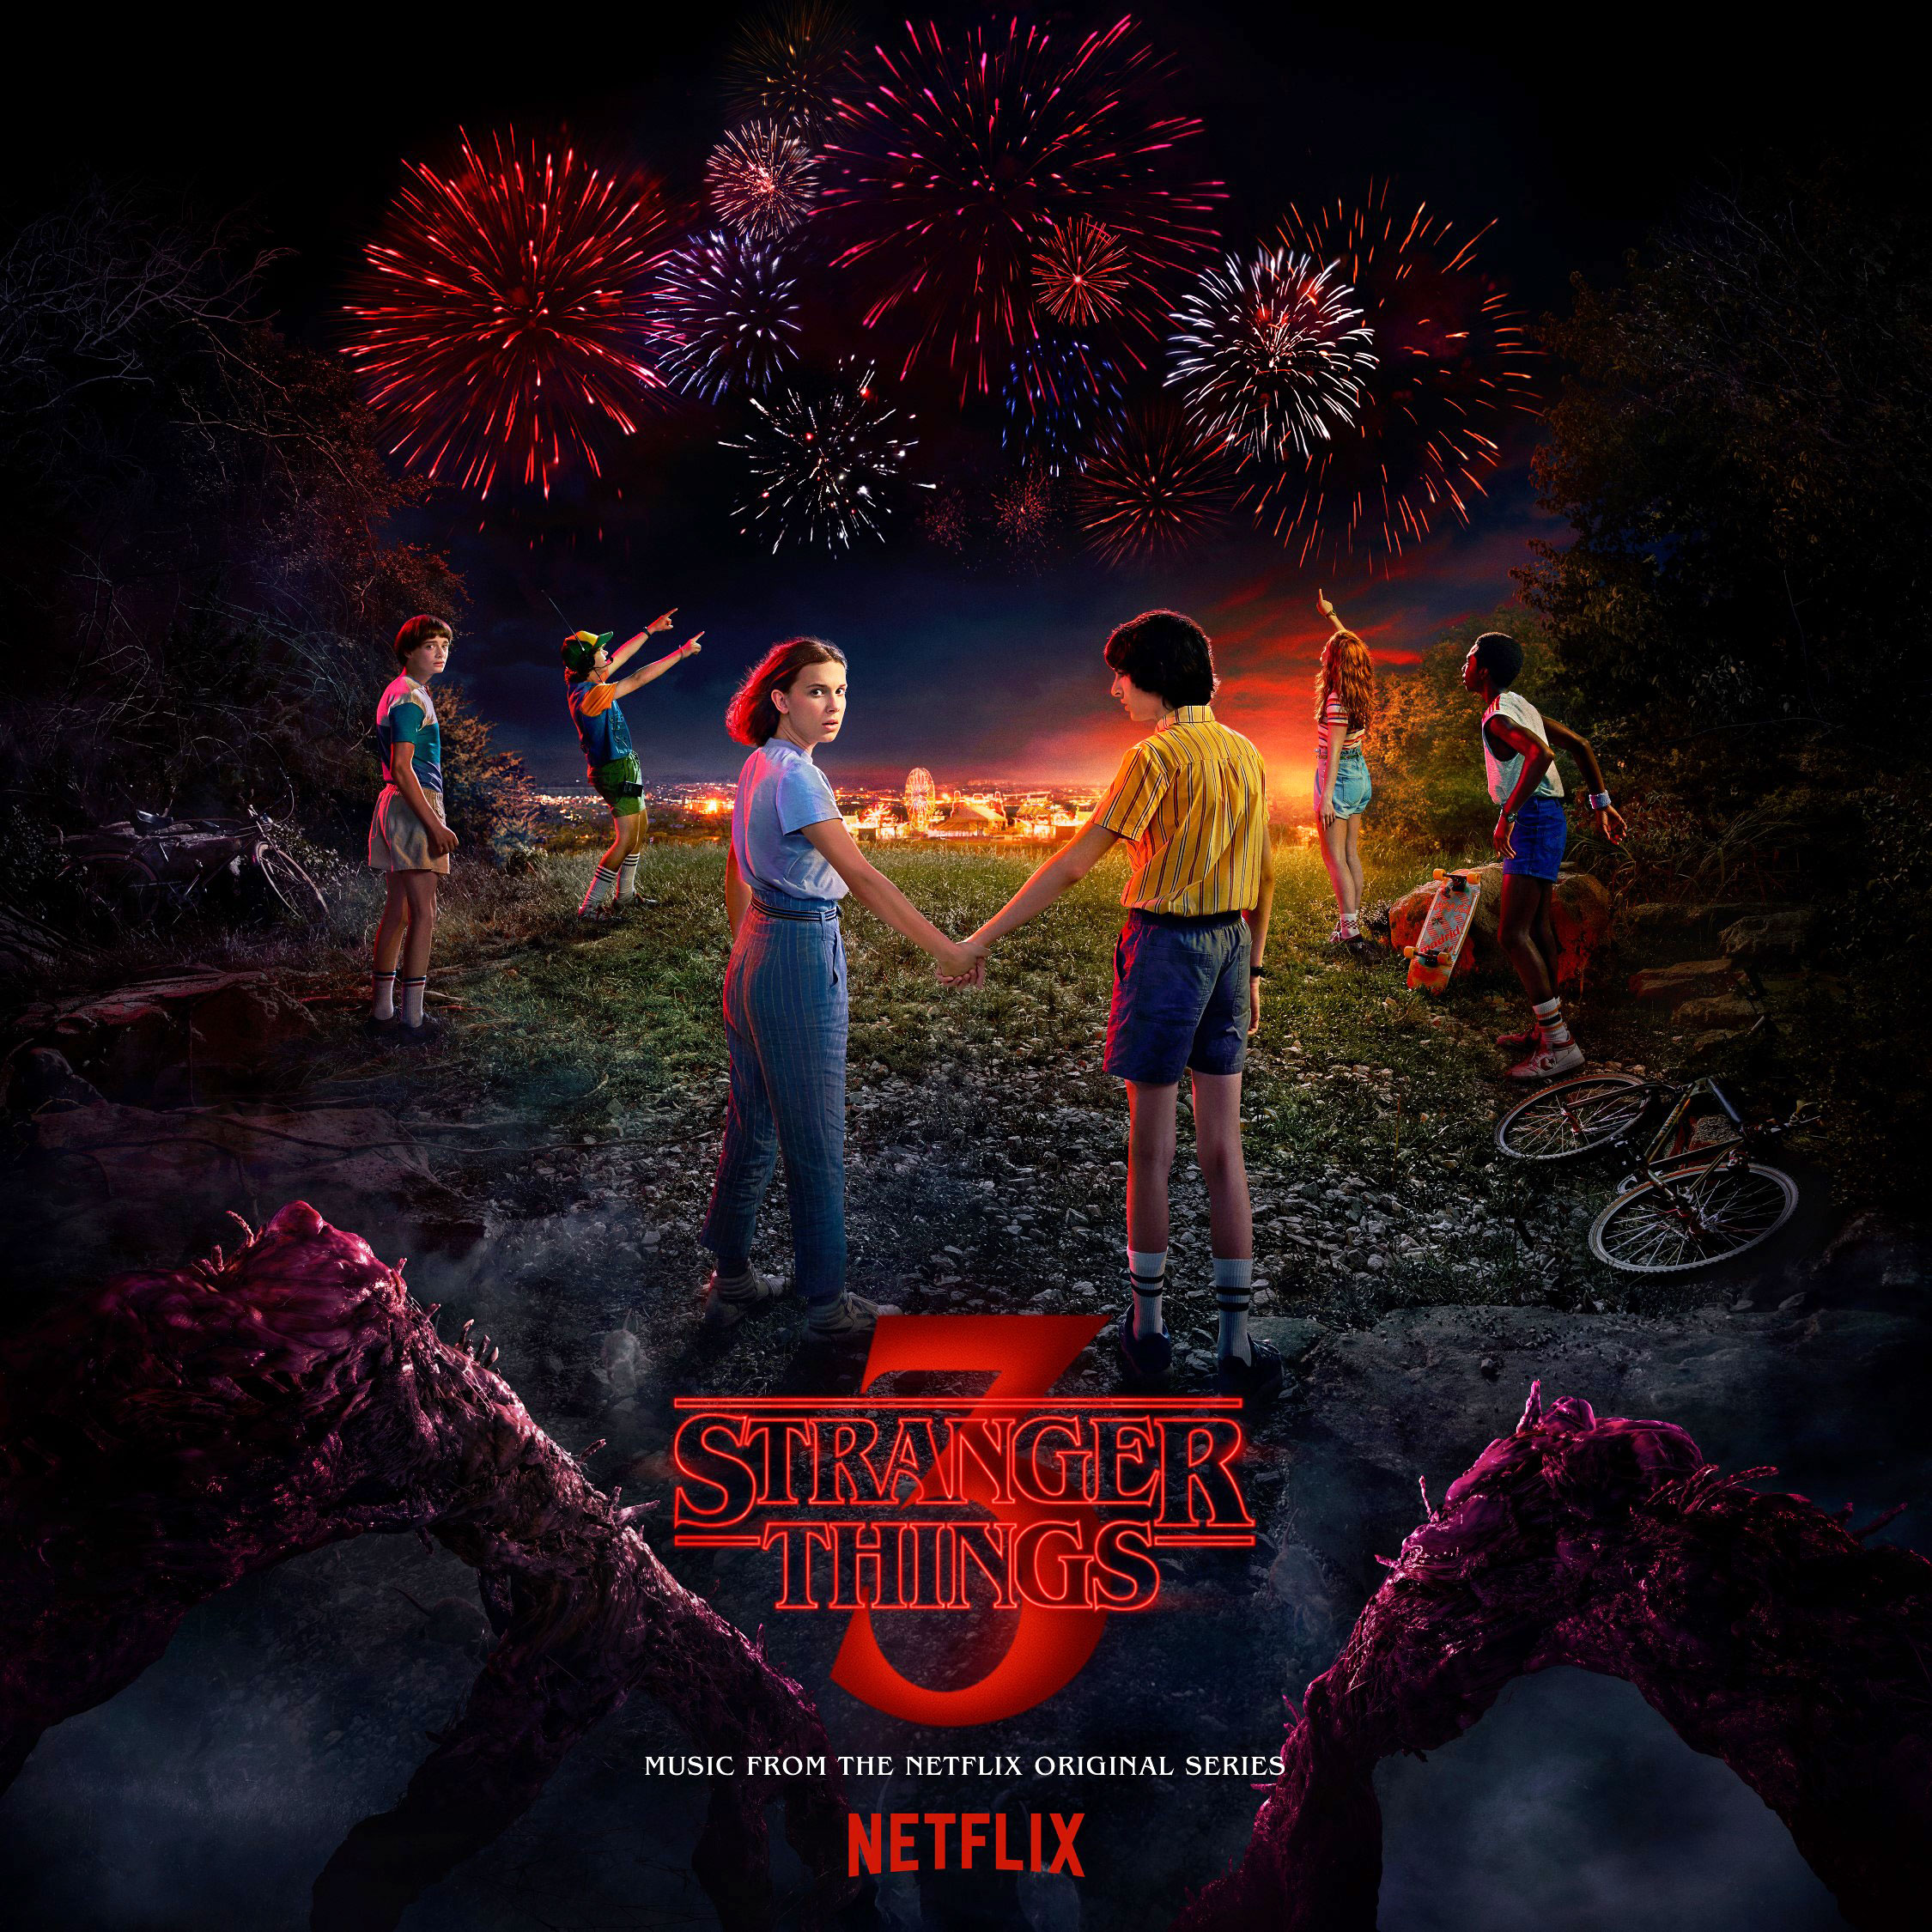 Stranger Things 3 Soundtrack Cover